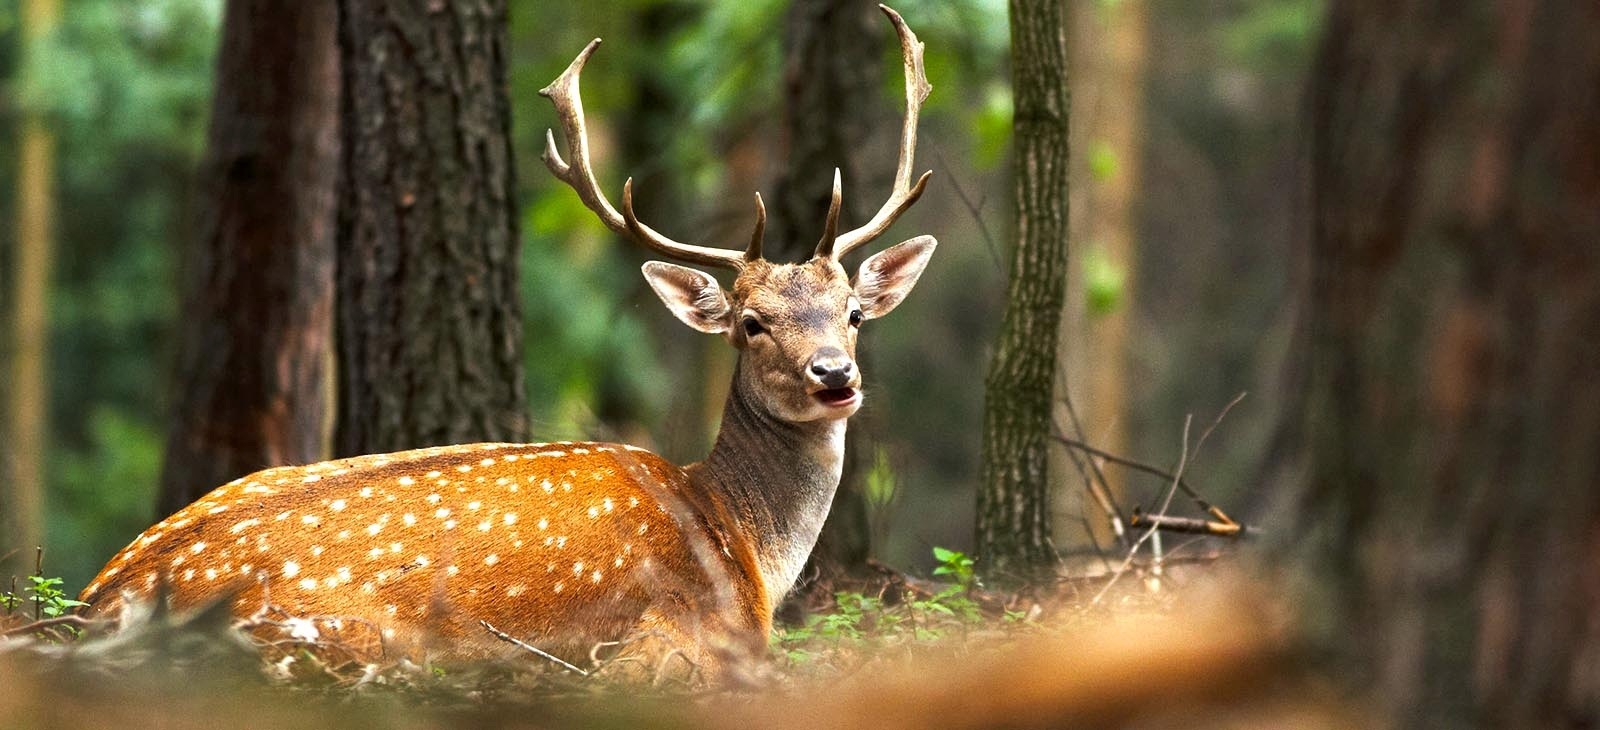 iranian deer s travels